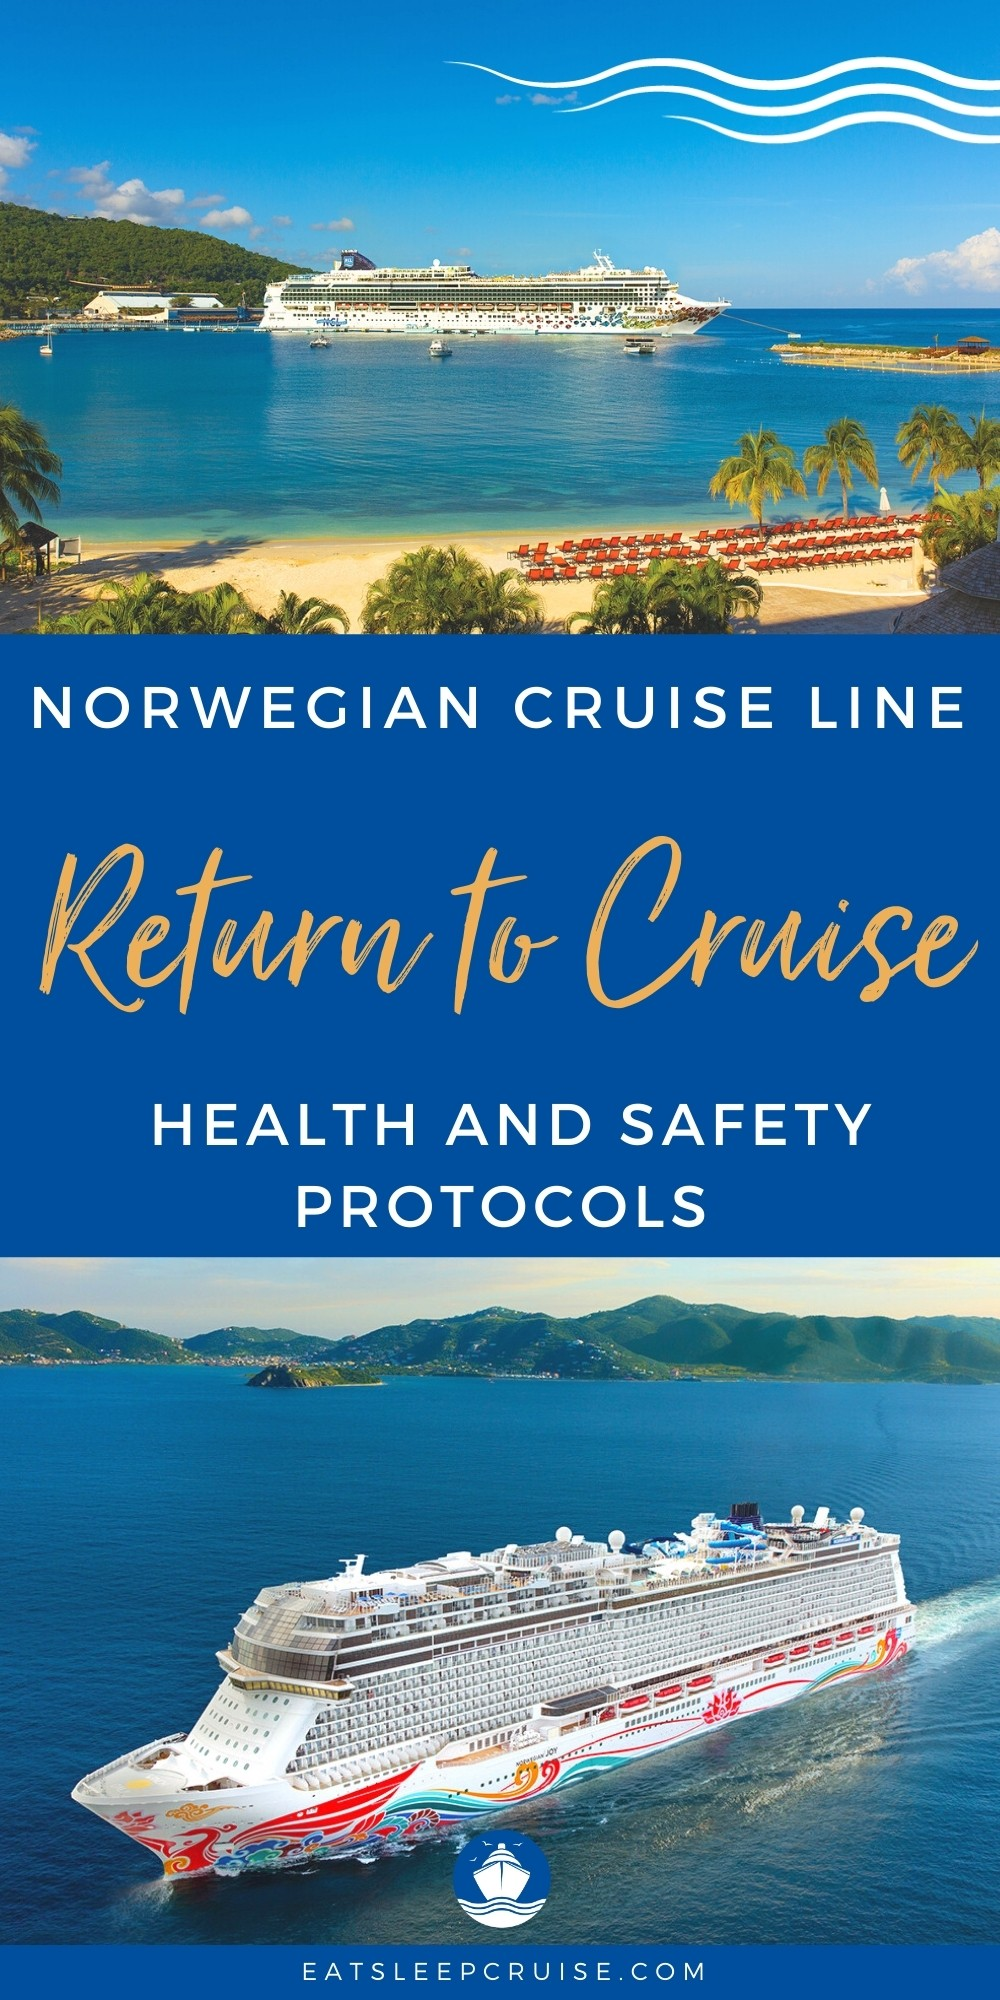 NCL return to cruise